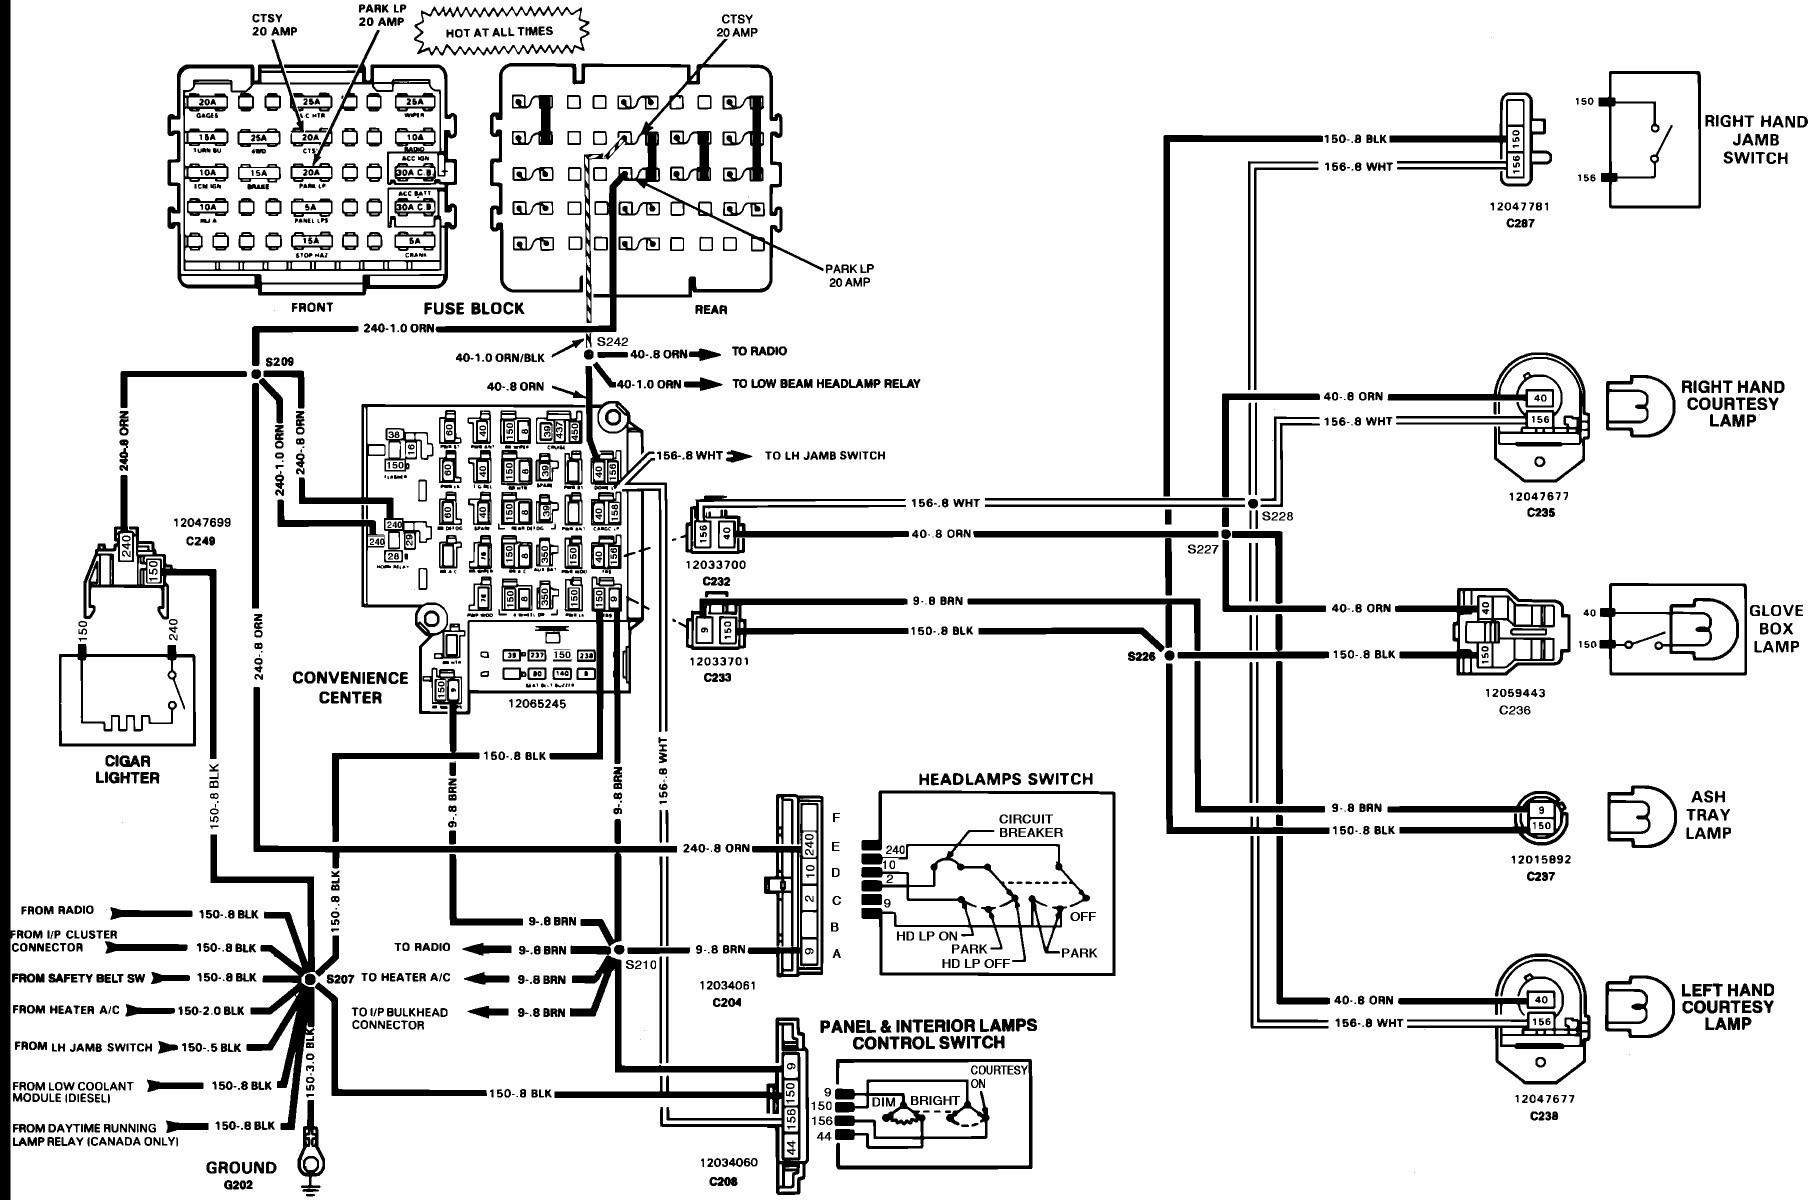 fuse box 1996 oldsmobile cutlass supreme wiring library88 98 chevy radio wiring  diagram \u2022 wiring